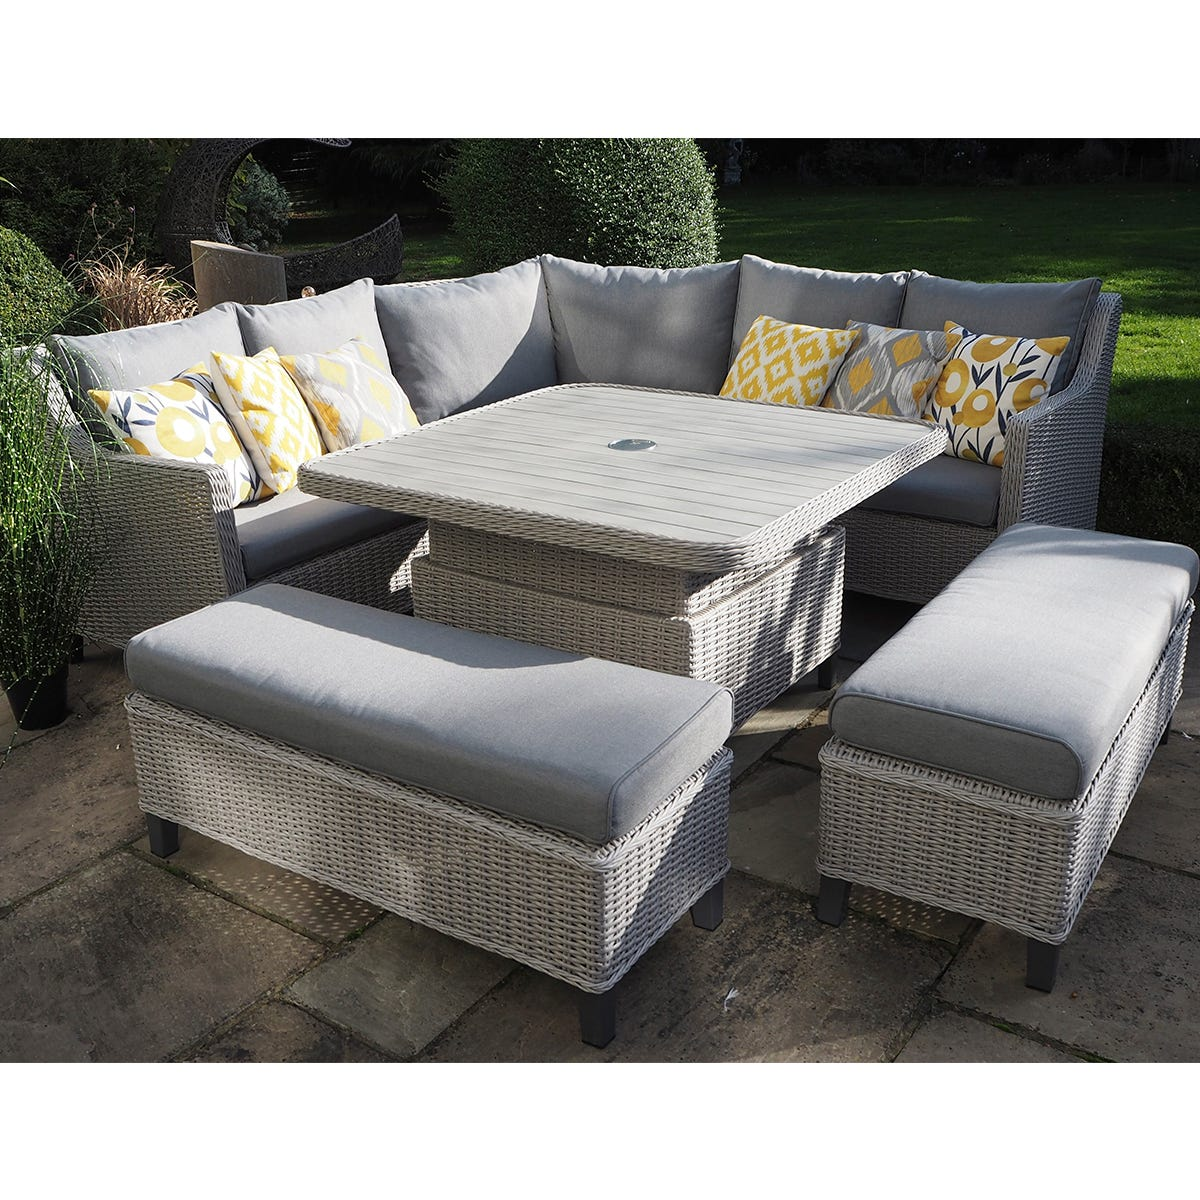 LG Outdoor Oslo Large Square Modular Dining Set with Crank Adjustable Table